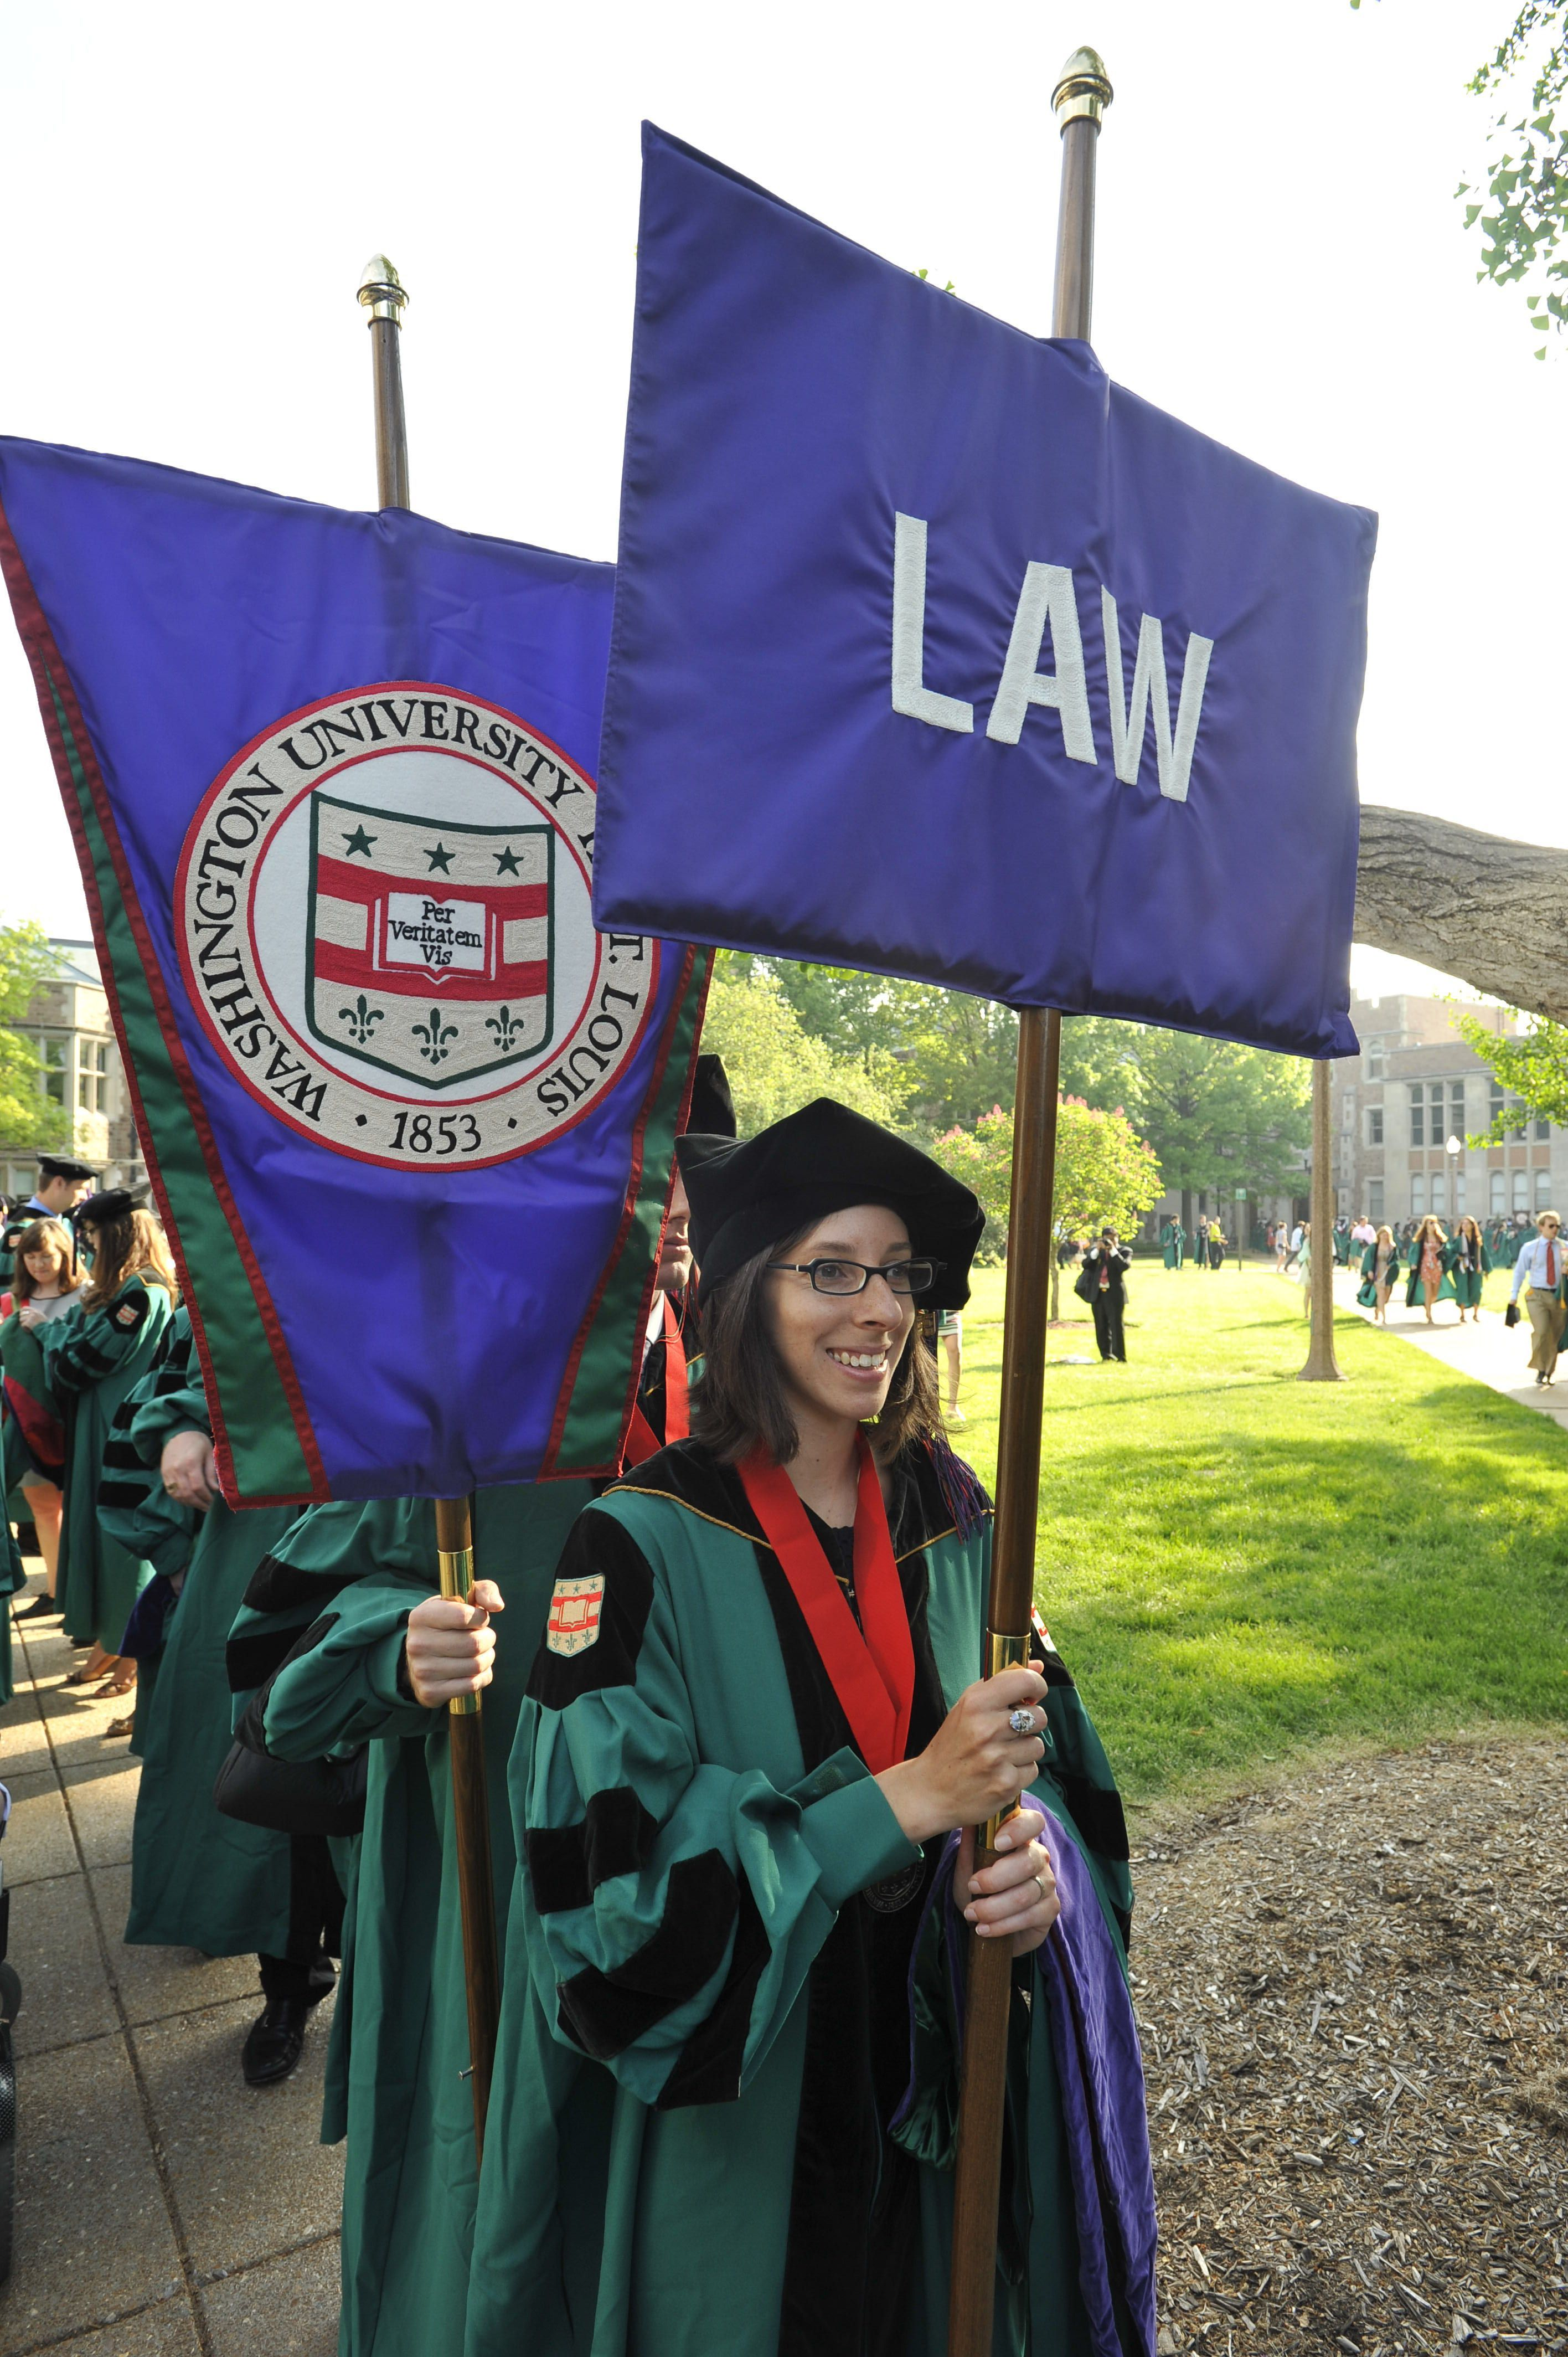 Did You Know The Color For Law In Academic Regalia Is